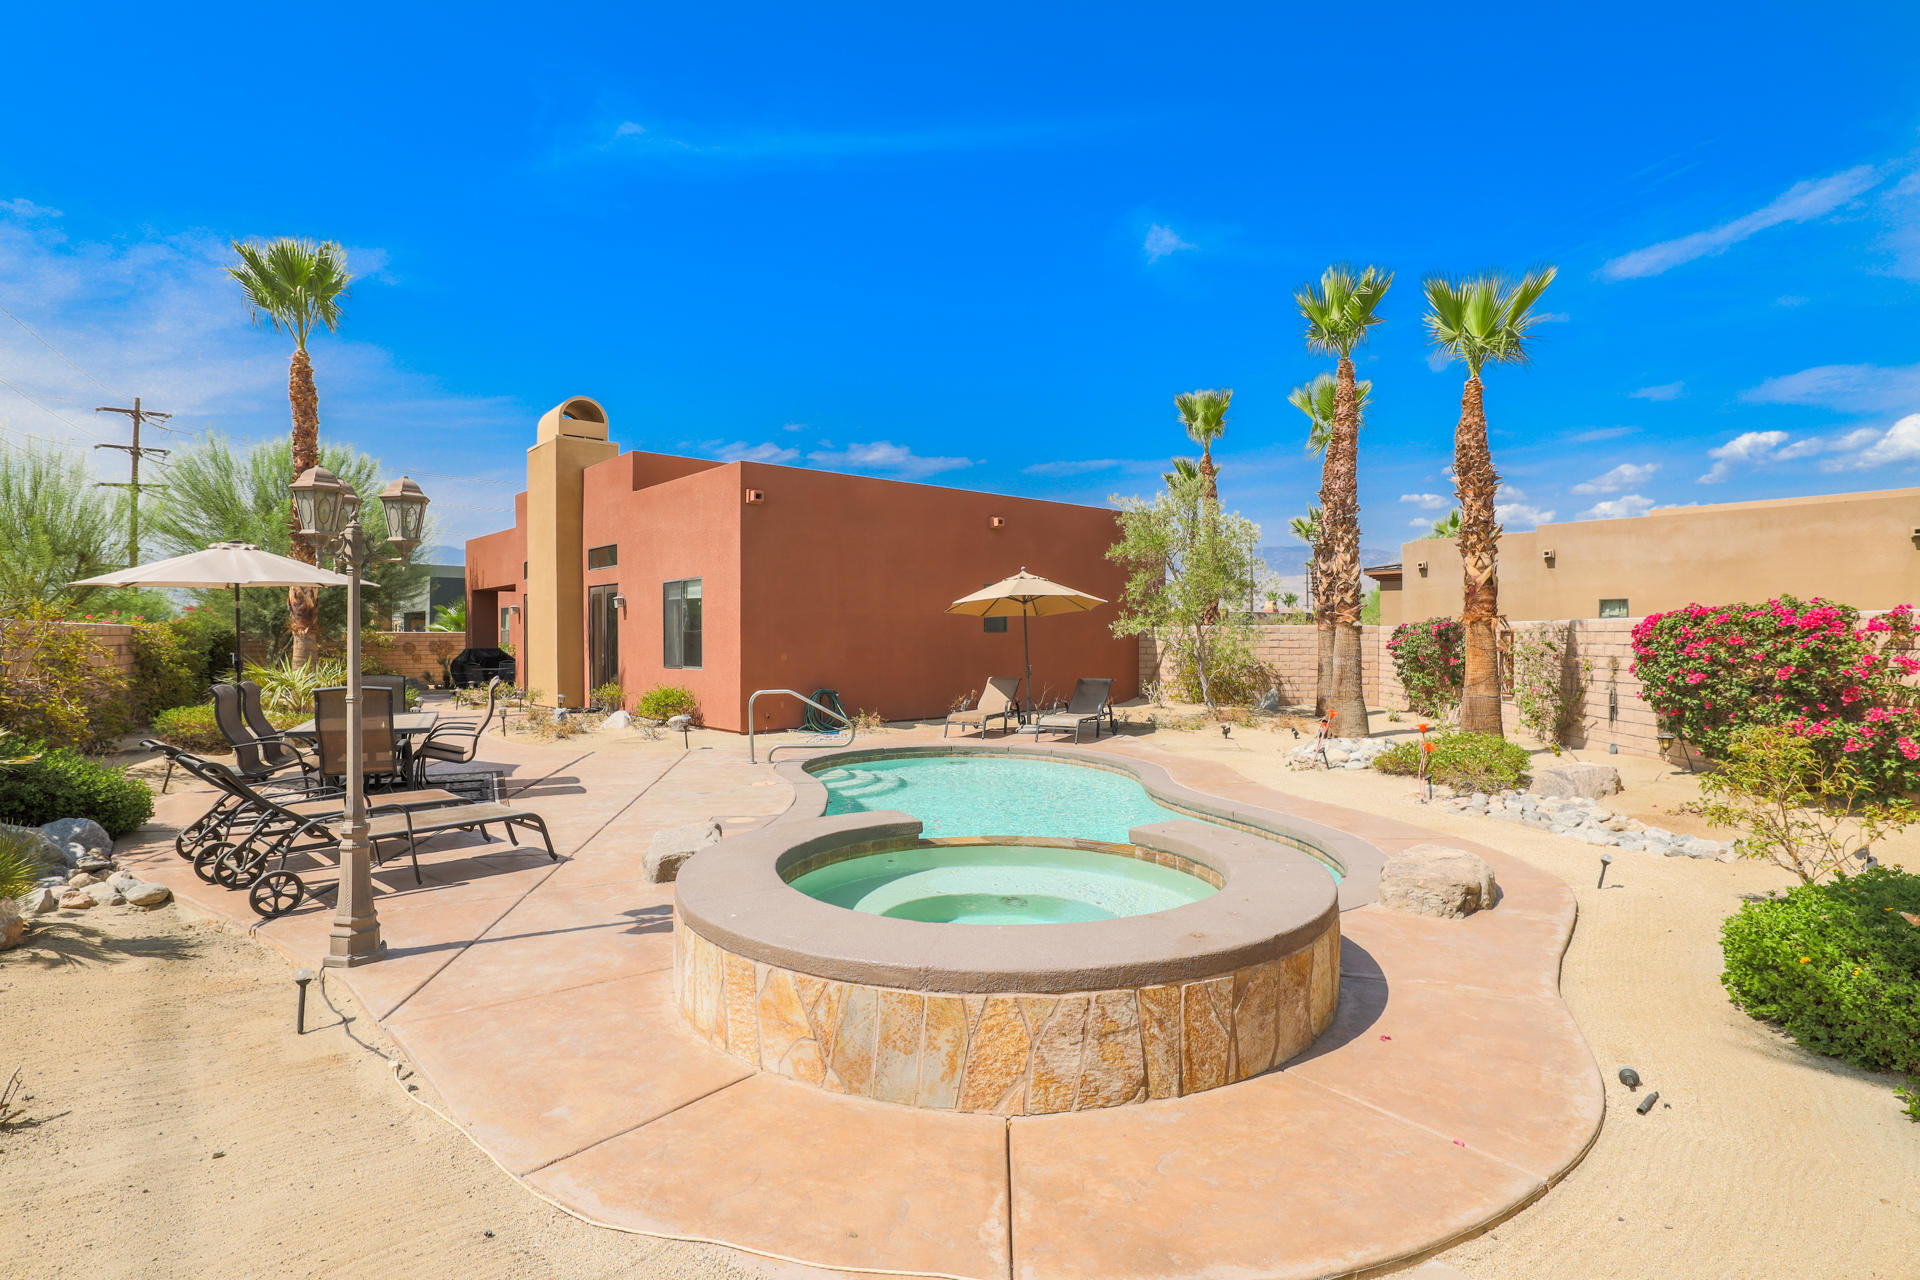 Located in the Semi Custom tract of Pele Place in North Palm Desert this 3 bedroom 2 bathroom pool/spa - Solar home is the epitome of Palm Desert Living! The interior design boasts 12 & 10 foot ceilings, all 8 foot doors, huge contemporary open floor plan, double door entry, 3 sets of French doors (all lead to the backyard) & split bedrooms making the master suite private from the 2 other bedrooms. The interior features big tile floors (laid diagonally), big base boards, granite counter tops/back splash, all high end appliances & pantry. The master bedroom features a double door entry plus a private slider to the backyard w/ a private patio. The master bathroom shows off an all marble shower, tub, & double vanity counter top w/ a big walk in closet. The home sits on a huge lot just under 12,000 square feet in the back of cul de sac. The backyard is a private paradise that shows off a Custom pool, spa, decking, & some mountain views! Welcome & enjoy life at your new Palm Desert home!!!